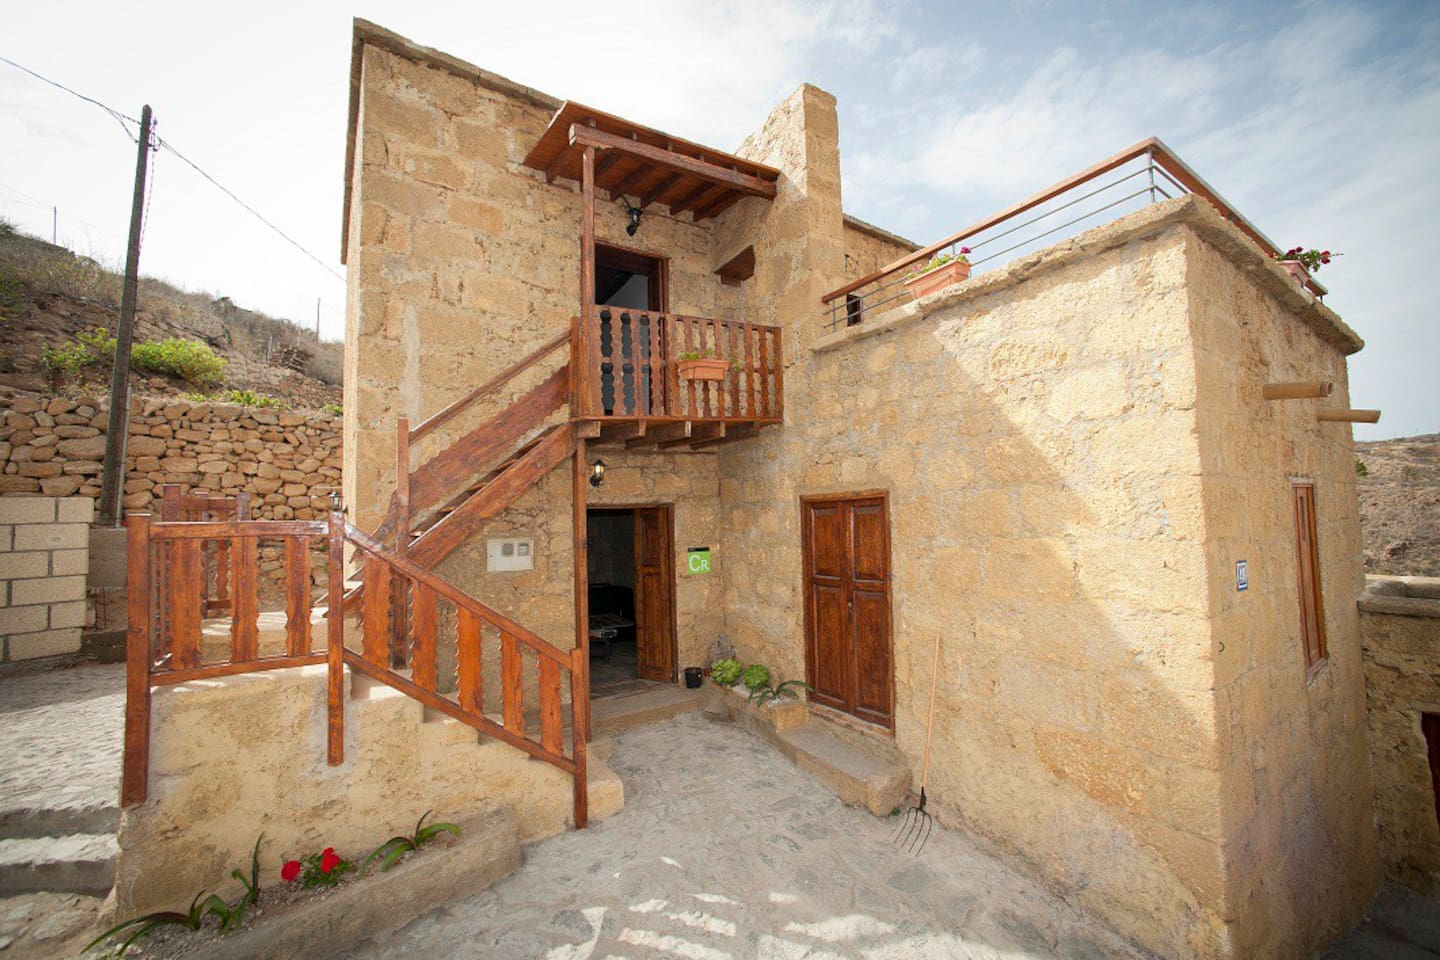 Traditional Canarian house, XIX century, recently restored, aimed at rural tourism, ideal for vacations, rest and relaxation. Made with volcanic materials.